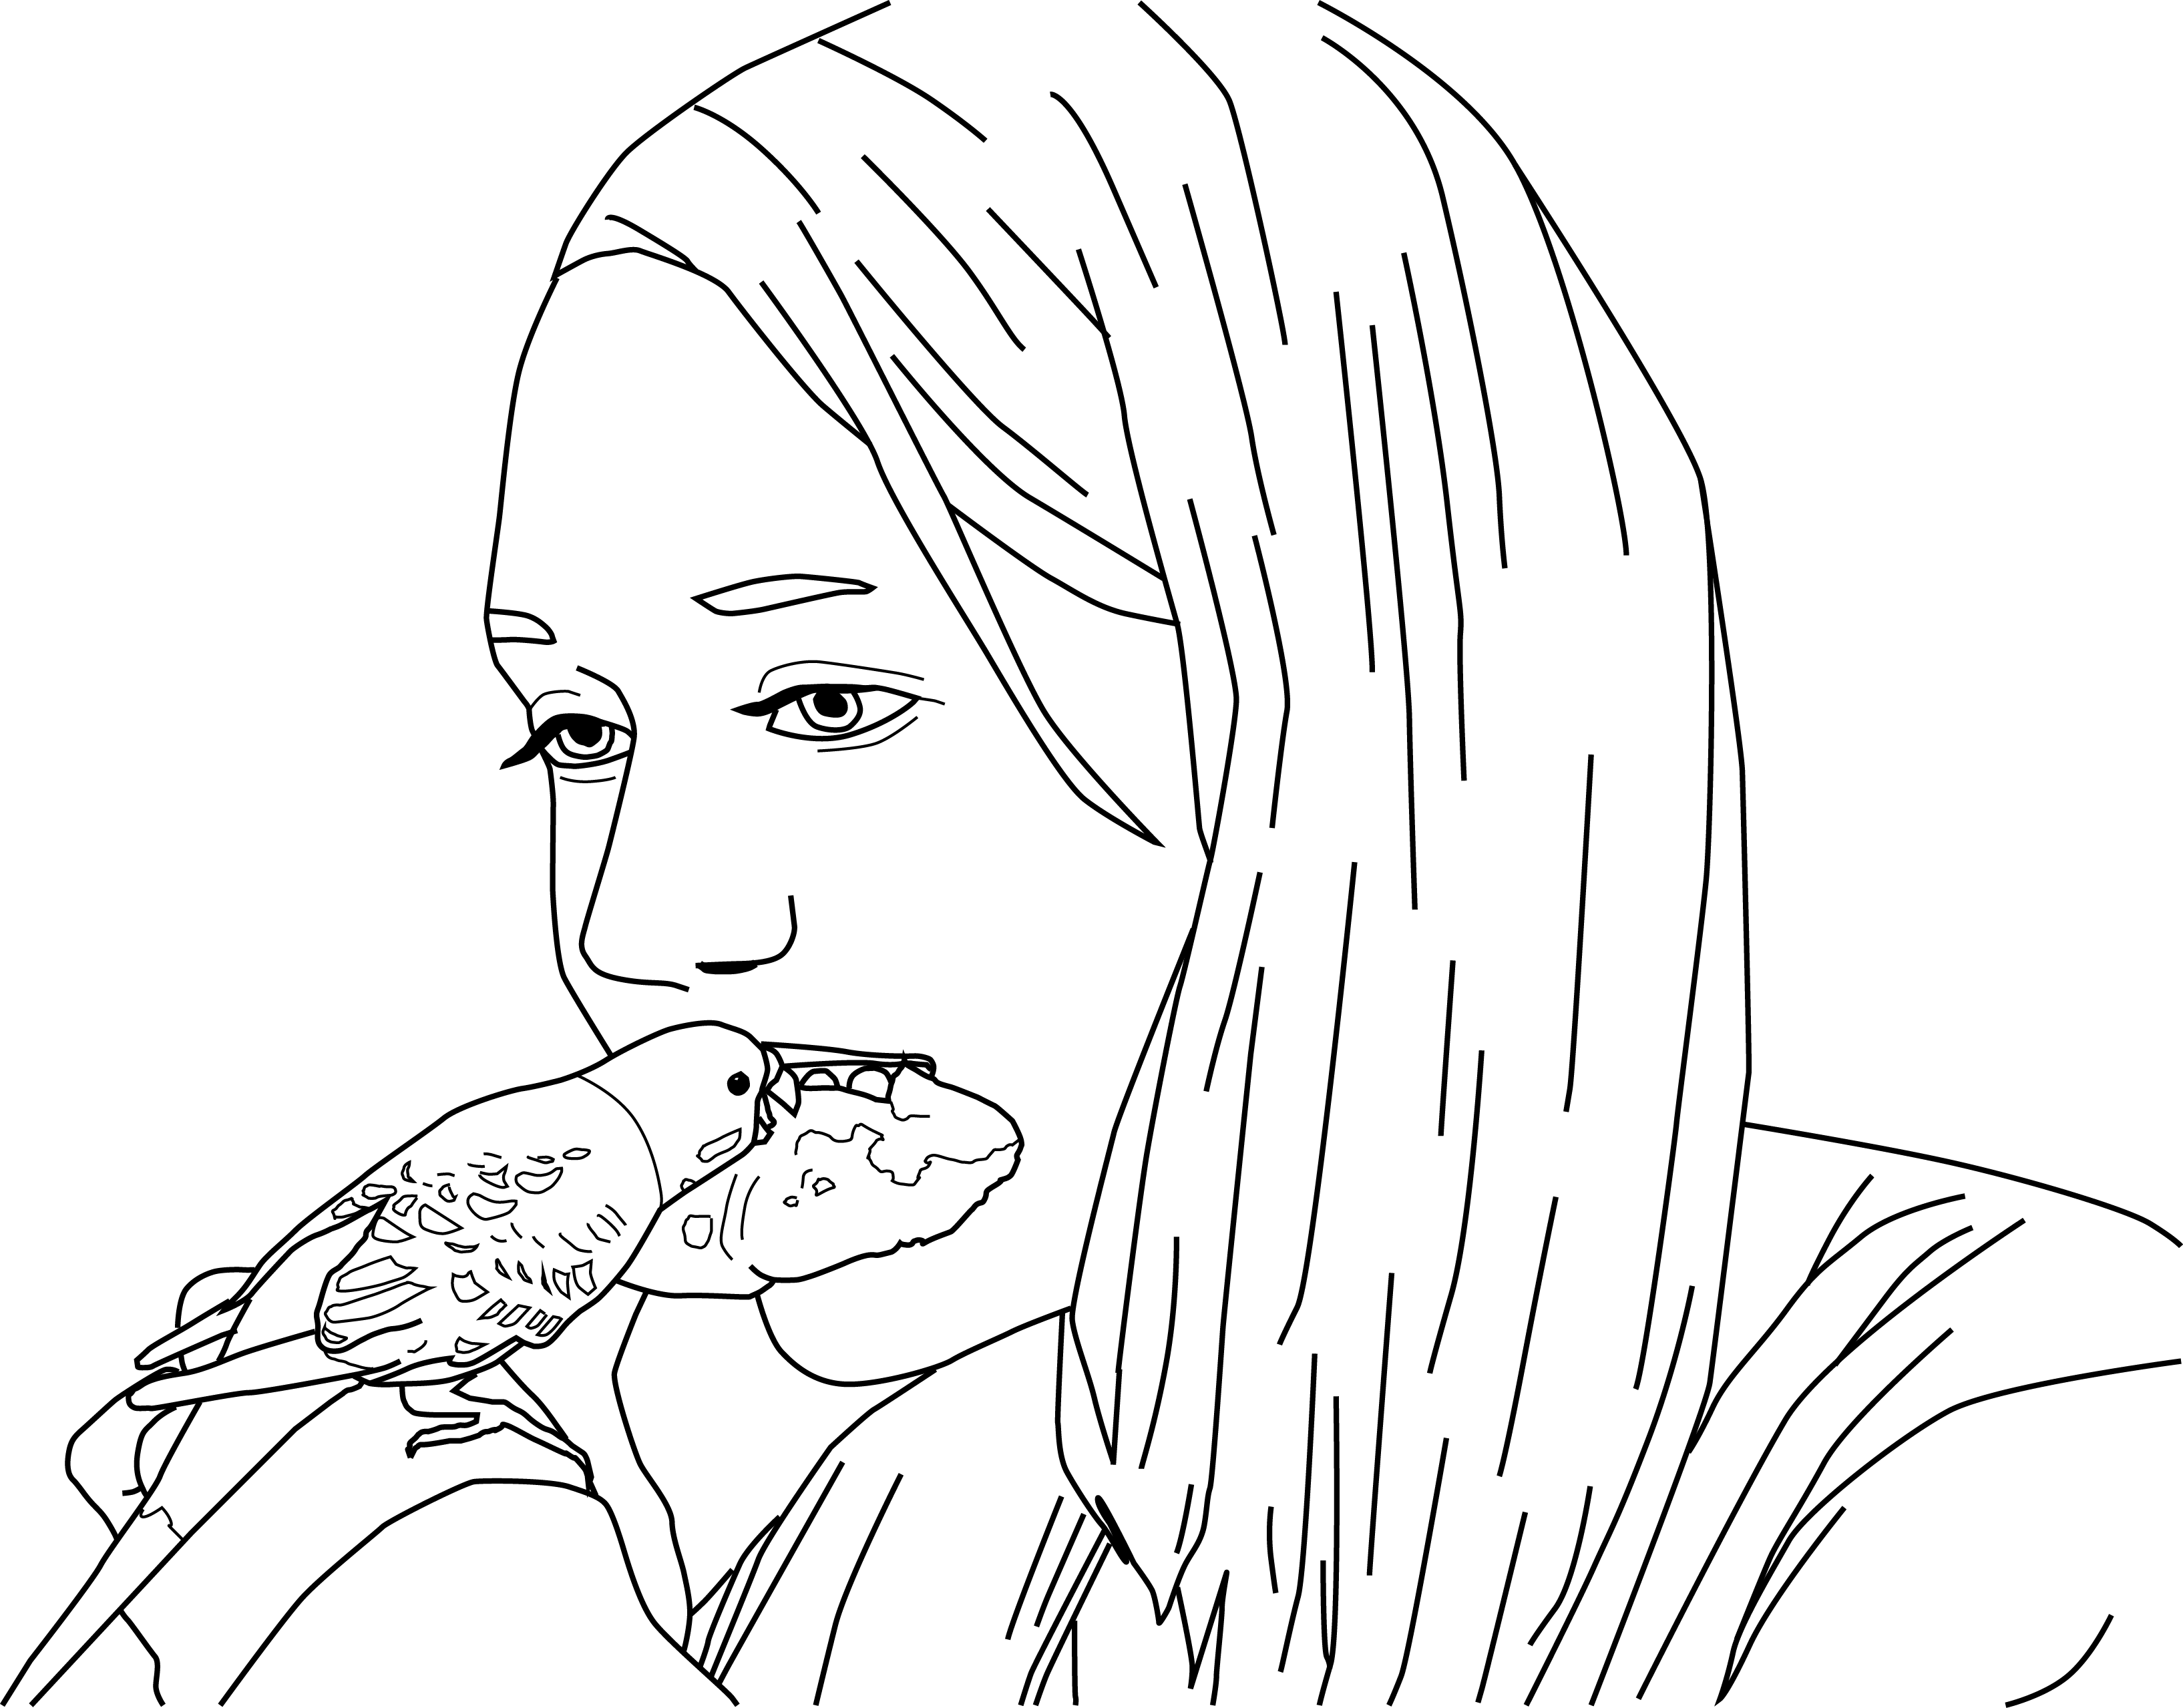 Parakeet Coloring Pages Parakeet Parakeet Coloring Pages Sketches